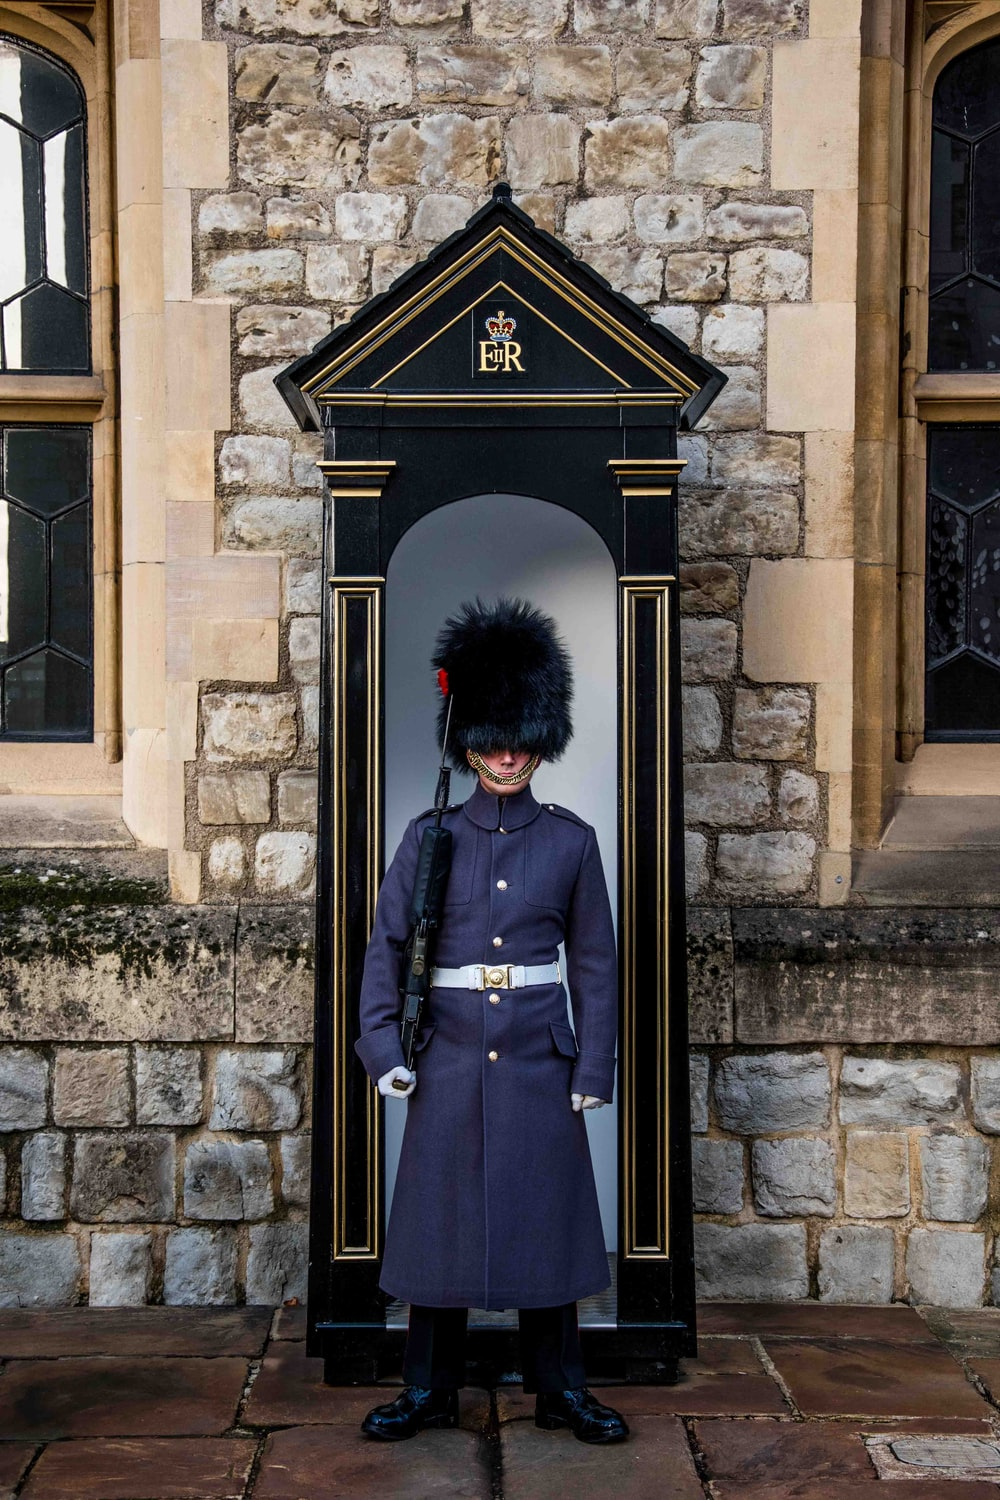 royal guard standing near booth